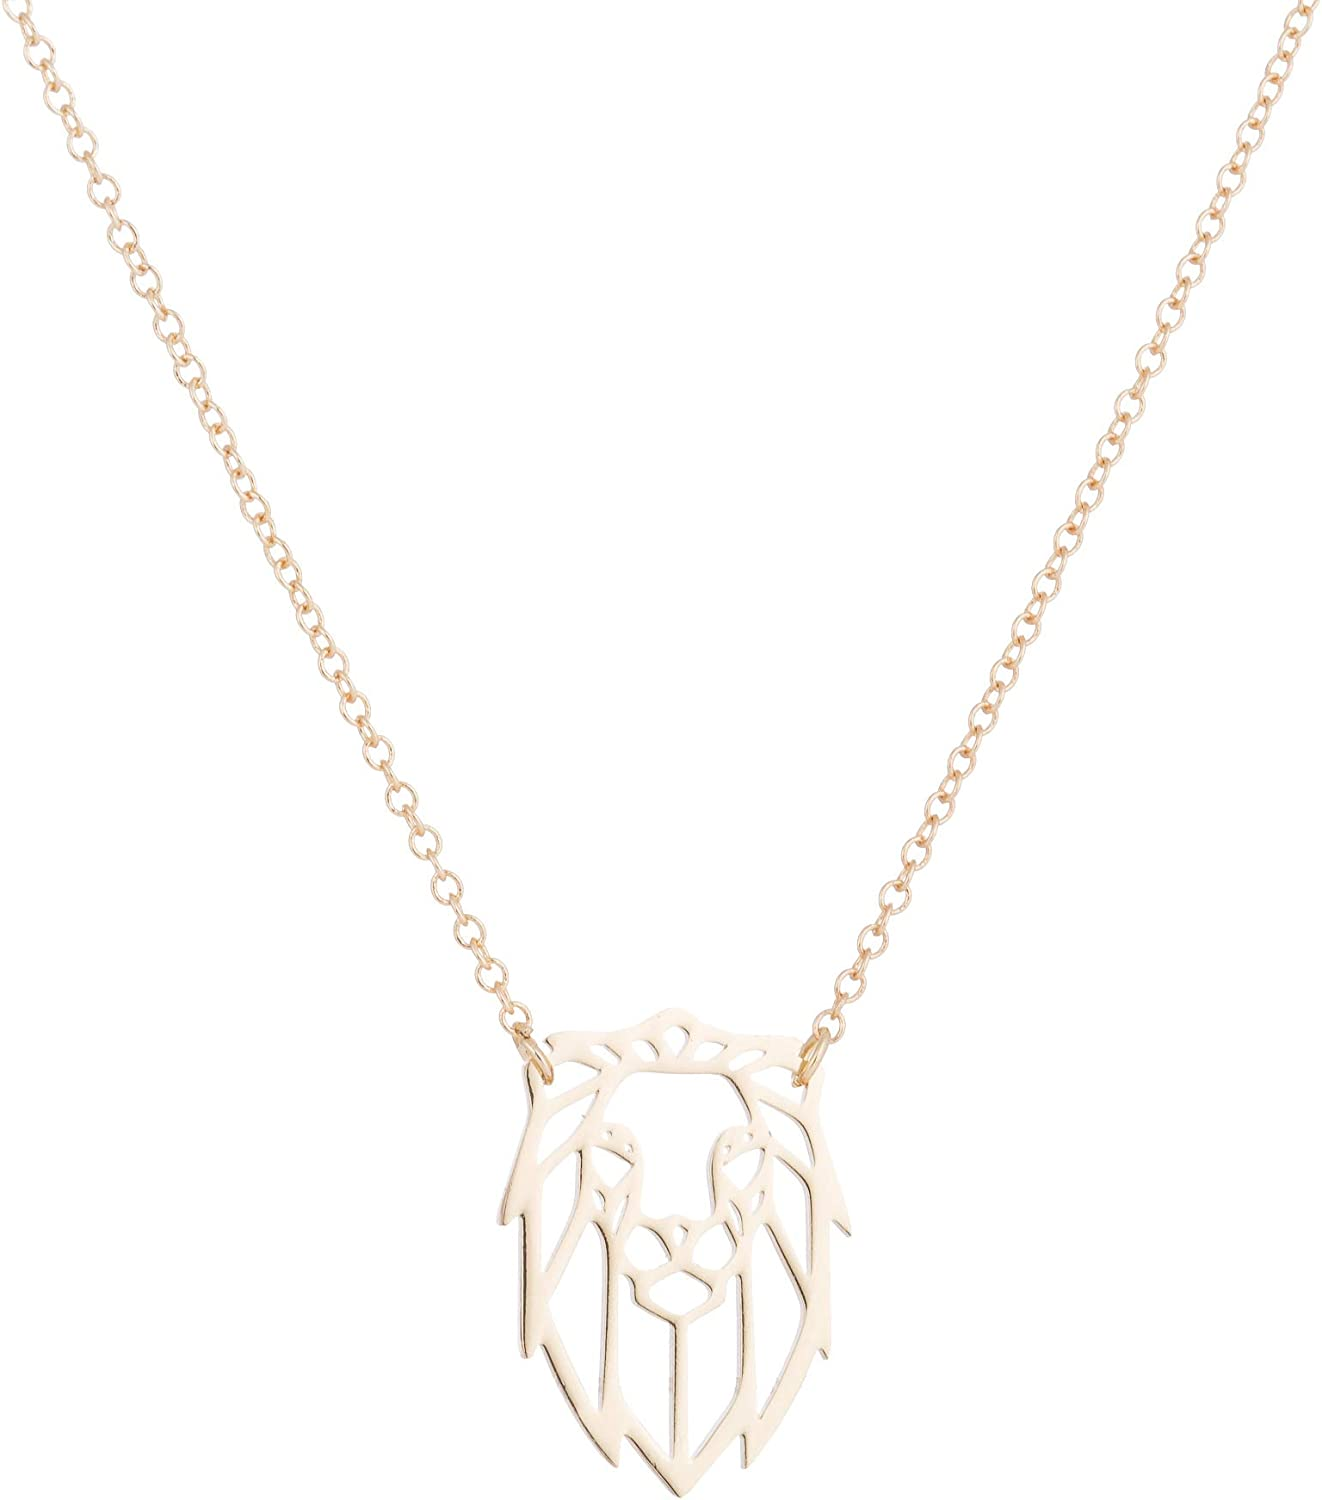 New Tiny Hollow Lion Head Stainless Steel Necklaces & Pendant for Women Animal Maxi Hiphop Collars